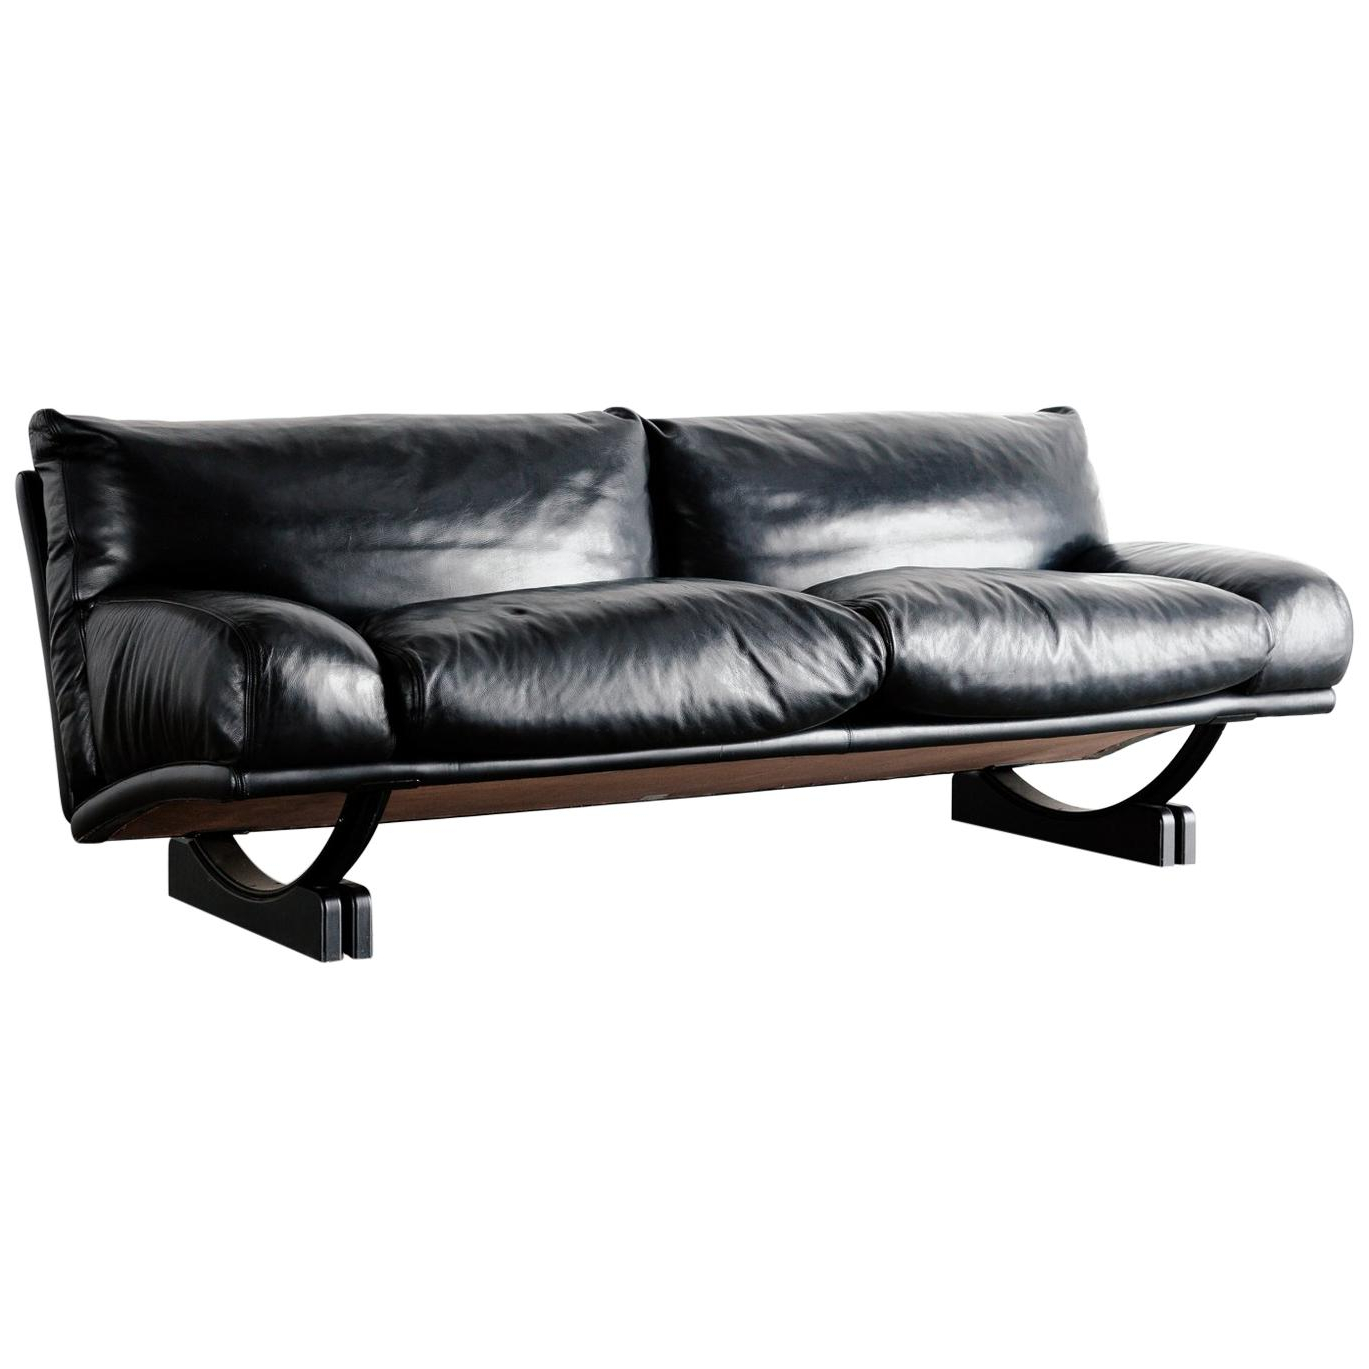 2019 London Optical Sofa Chairs Regarding Antique And Vintage Chairs, Sofas And Seating – 71,671 For Sale At (View 3 of 20)